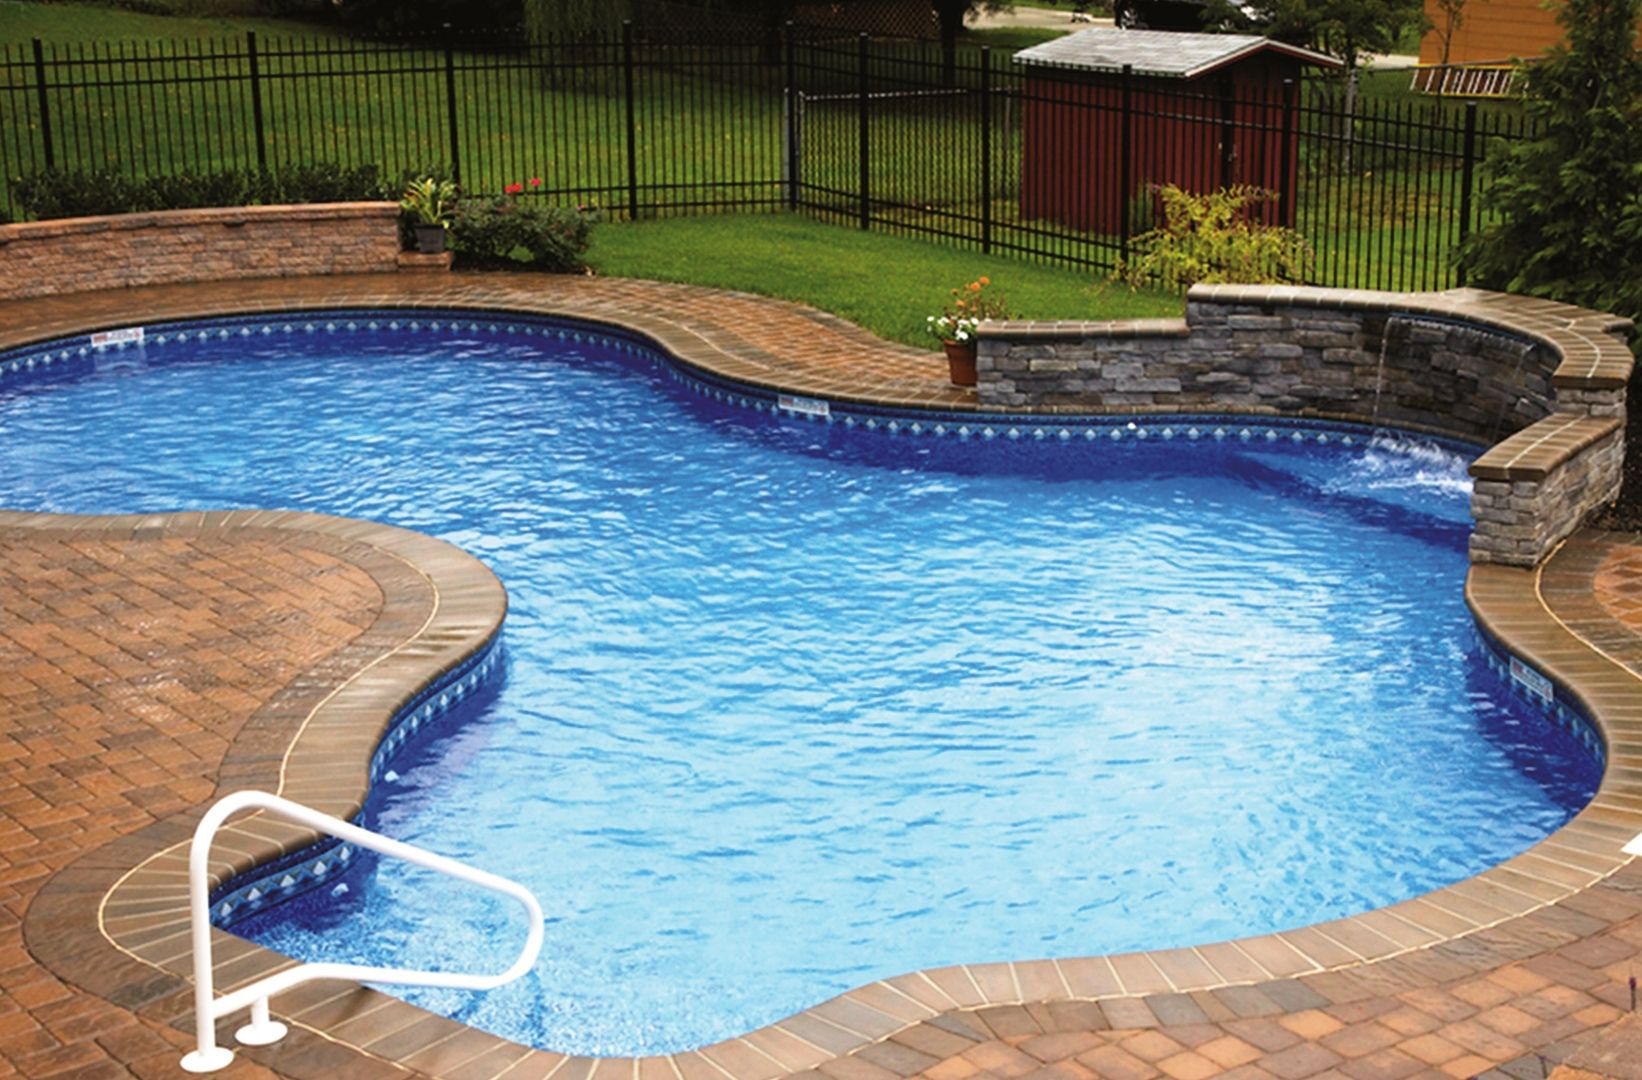 Back yard swimming pool ideas swimming pool design for Garden pool designs ideas